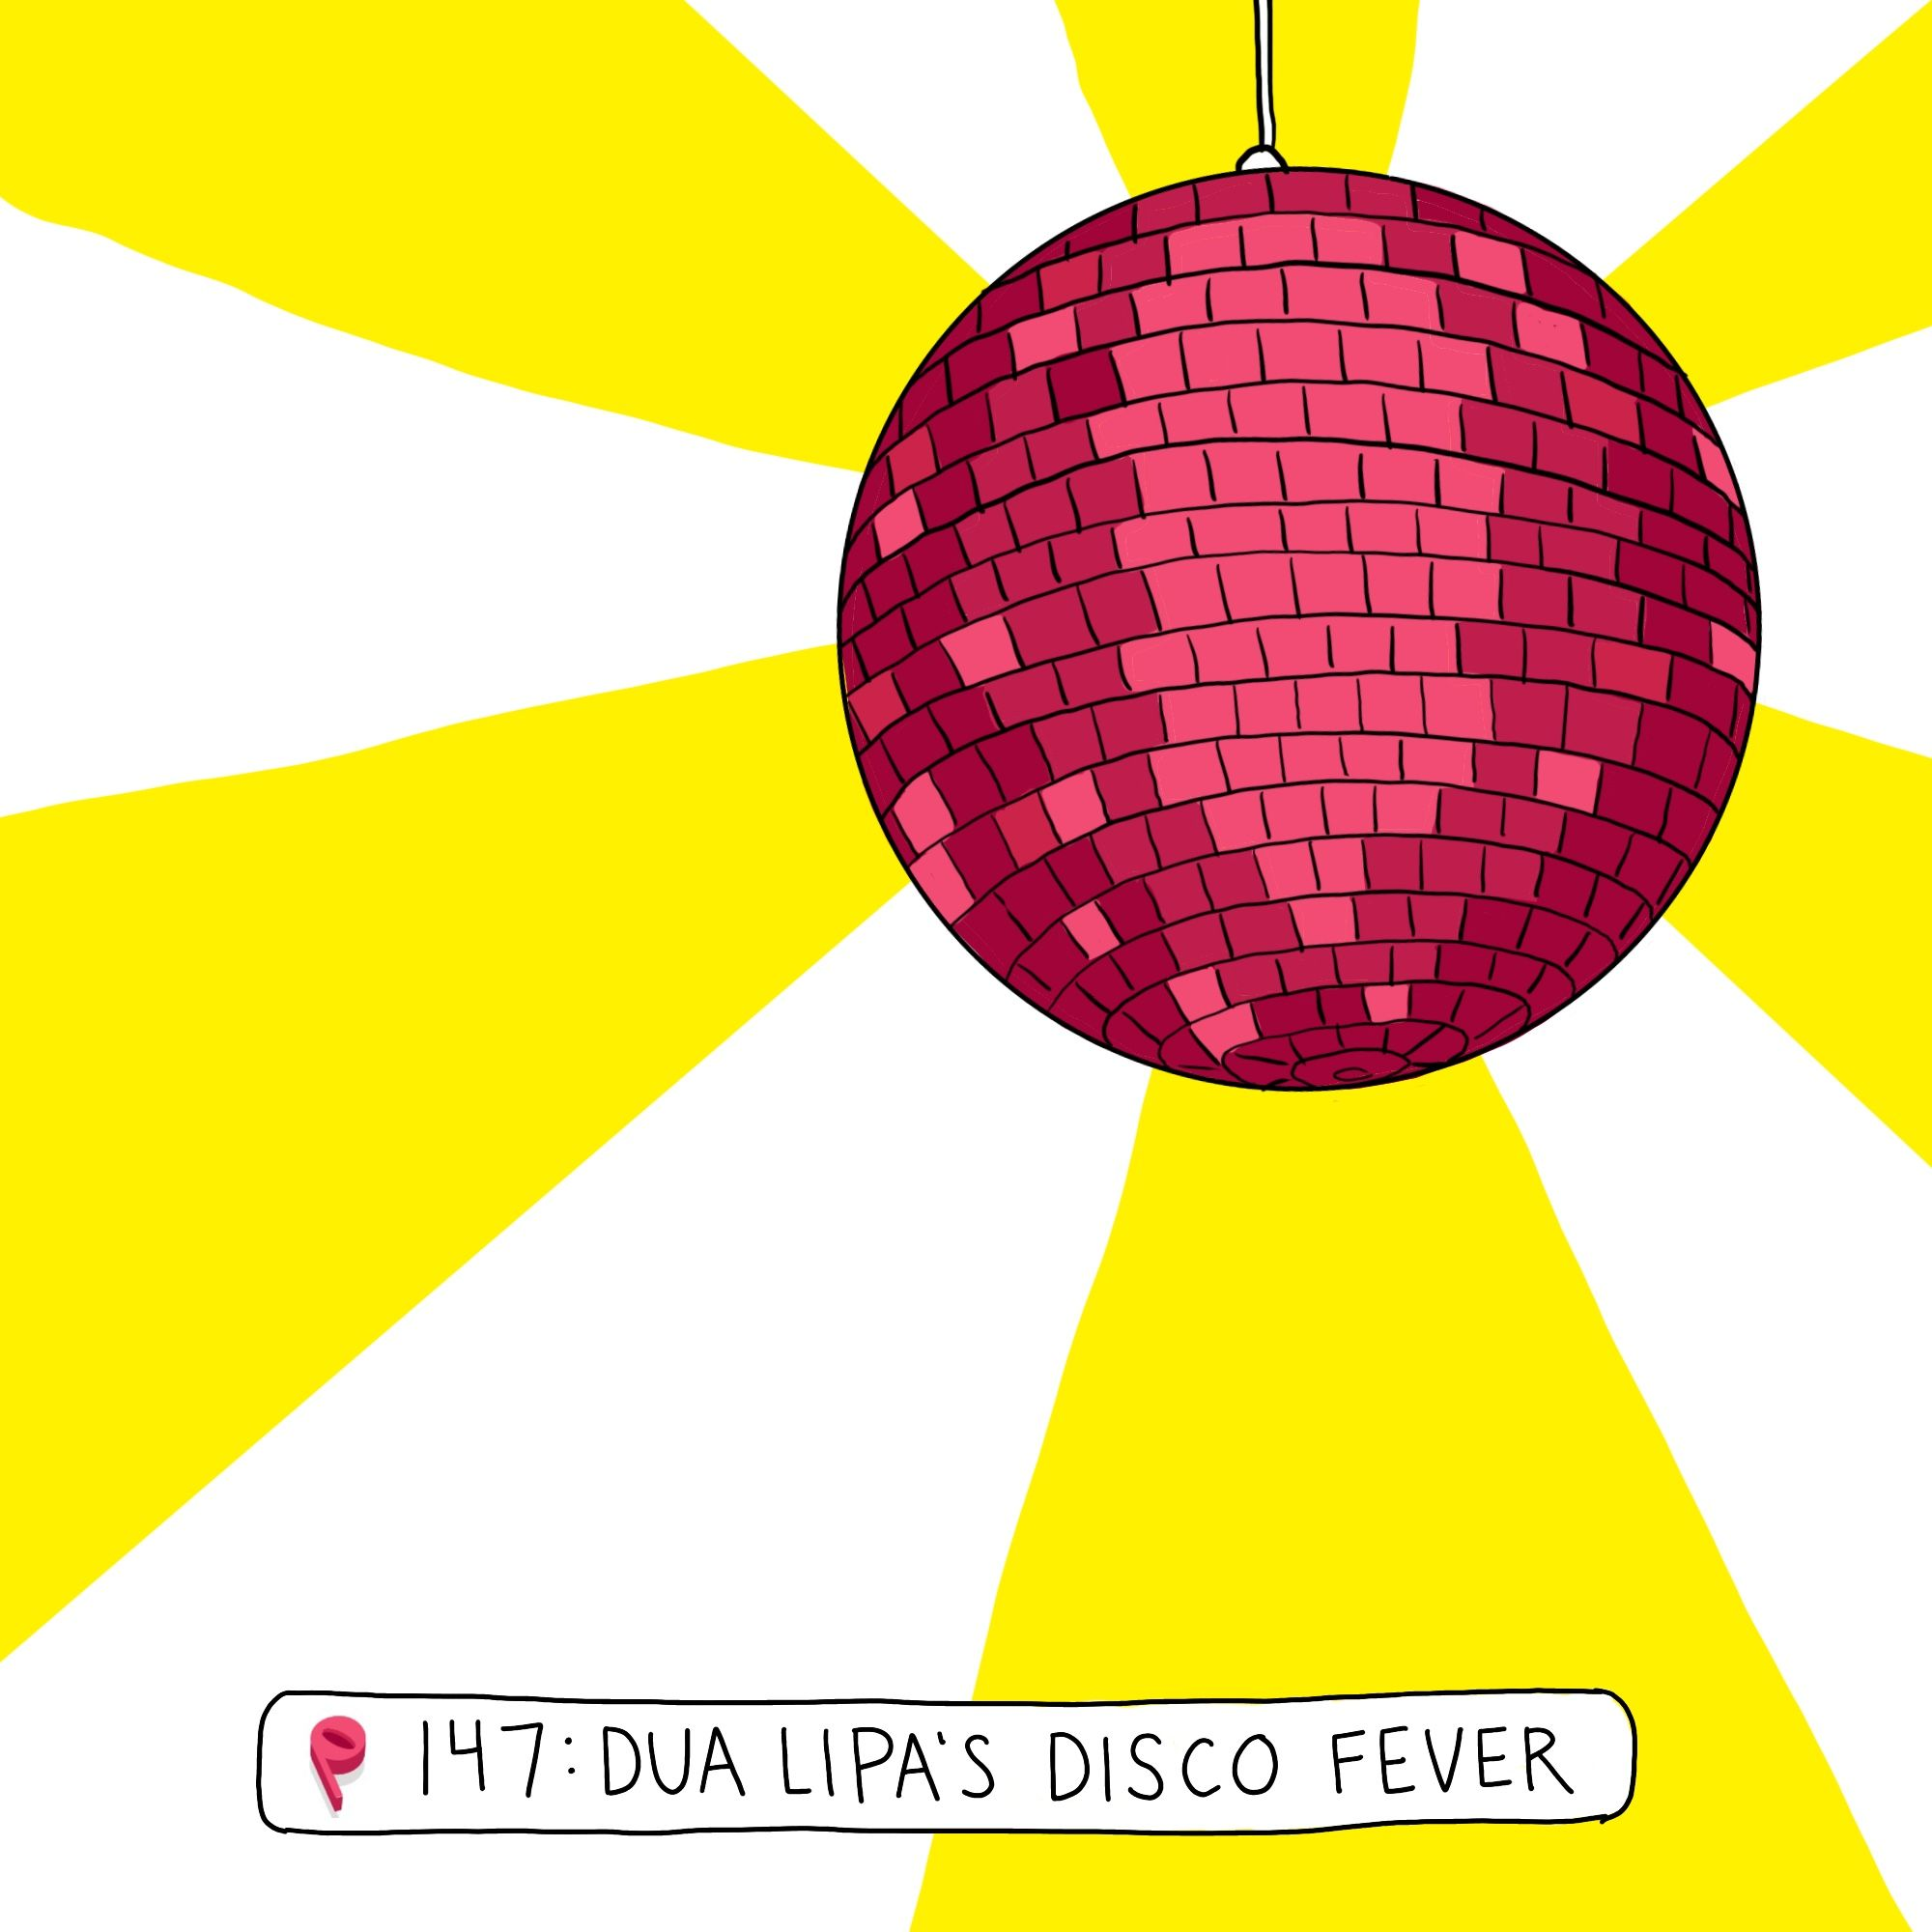 Dua Lipa's Disco Fever